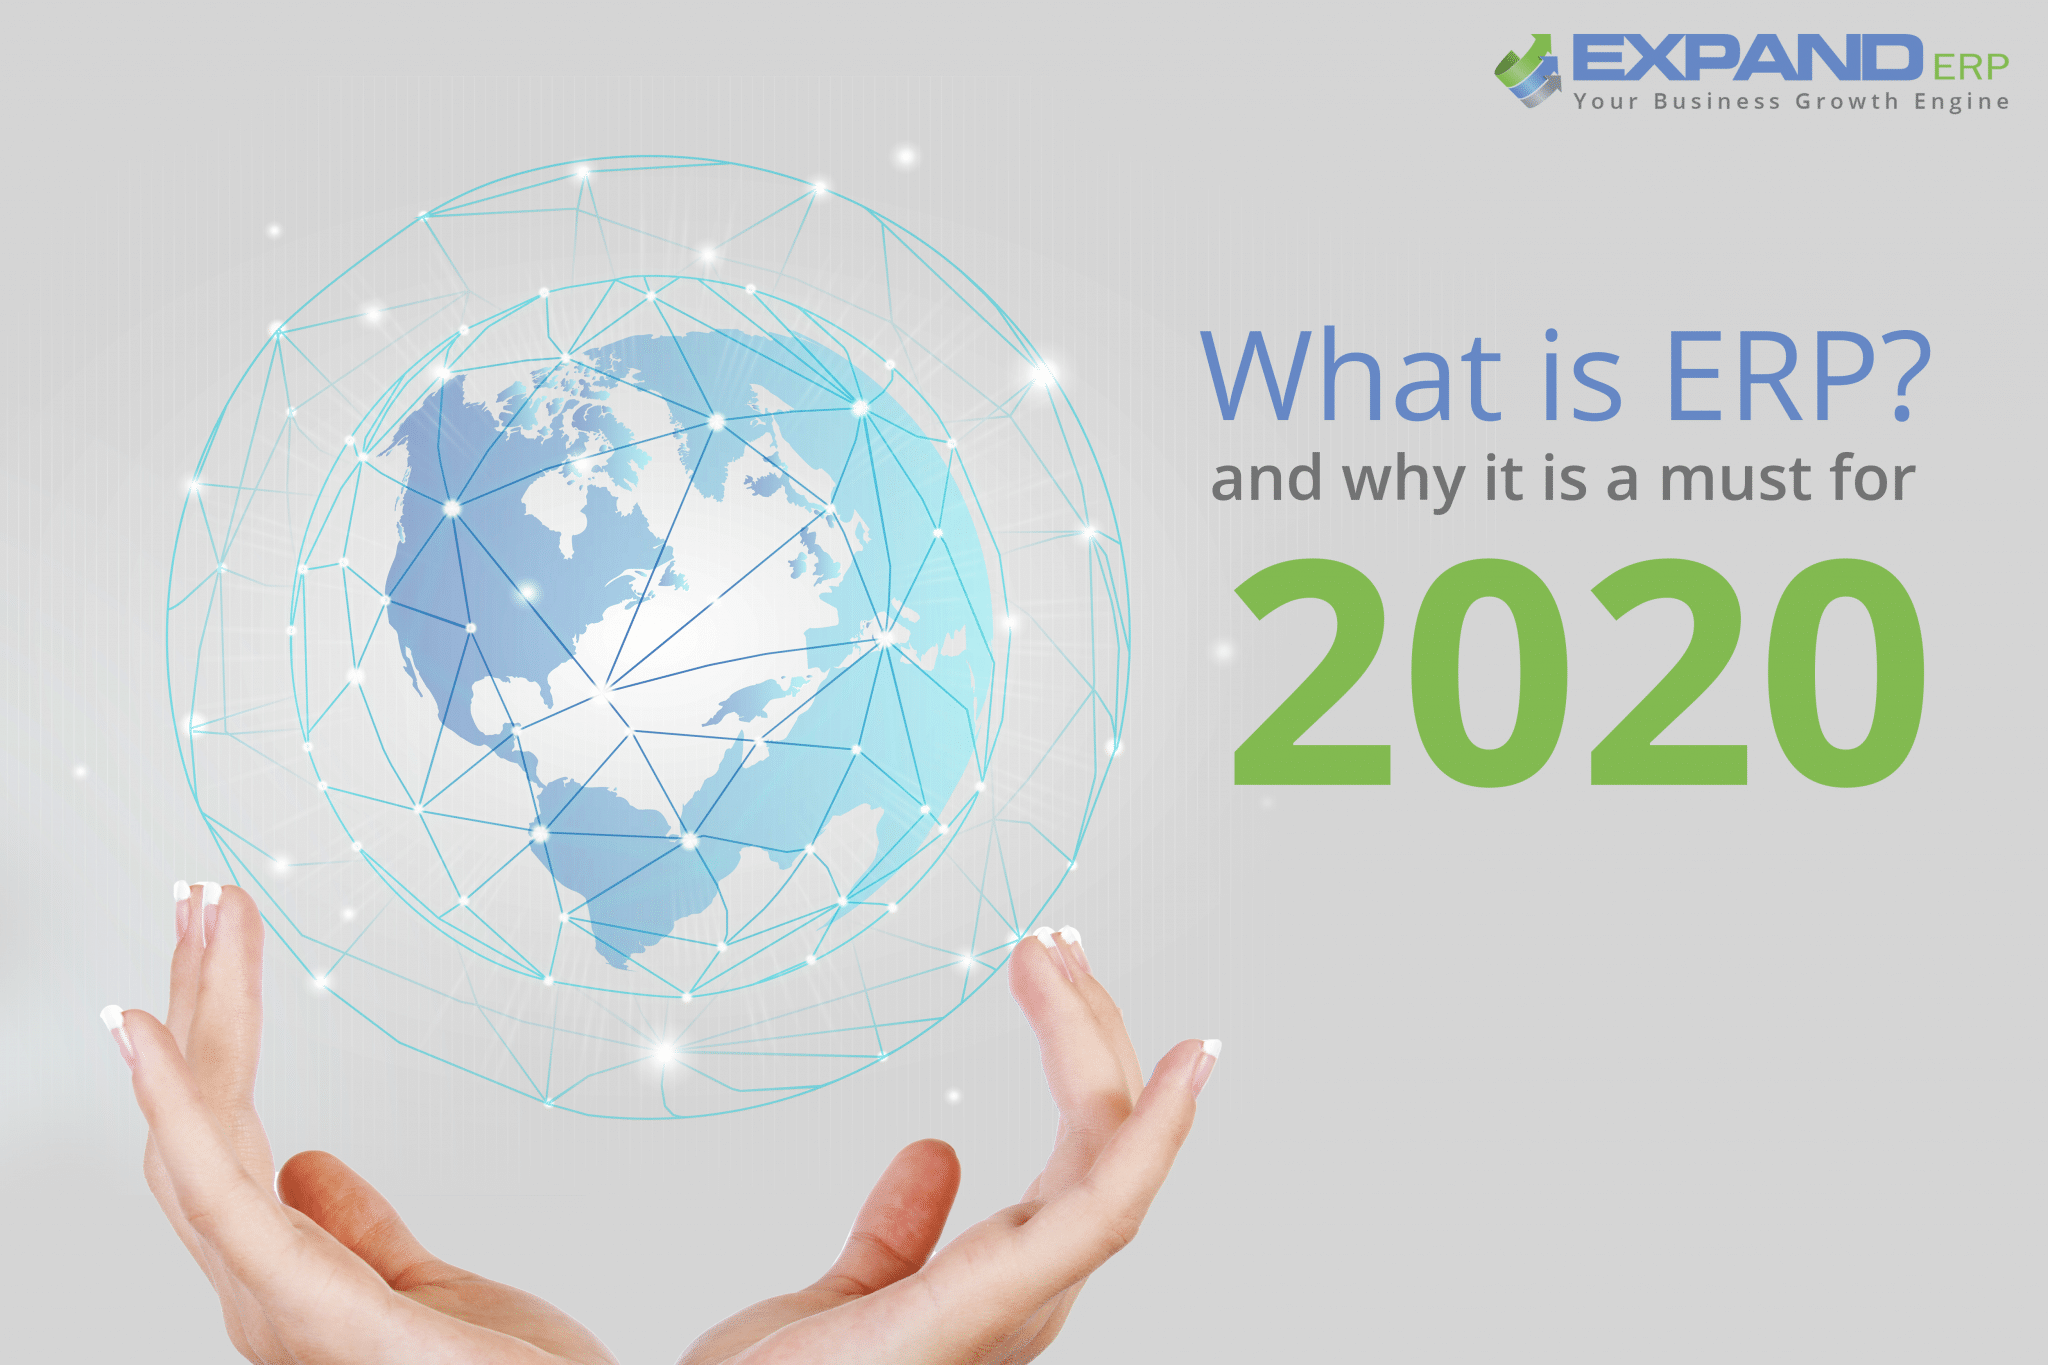 What is ERP and why it is a must for 2020?